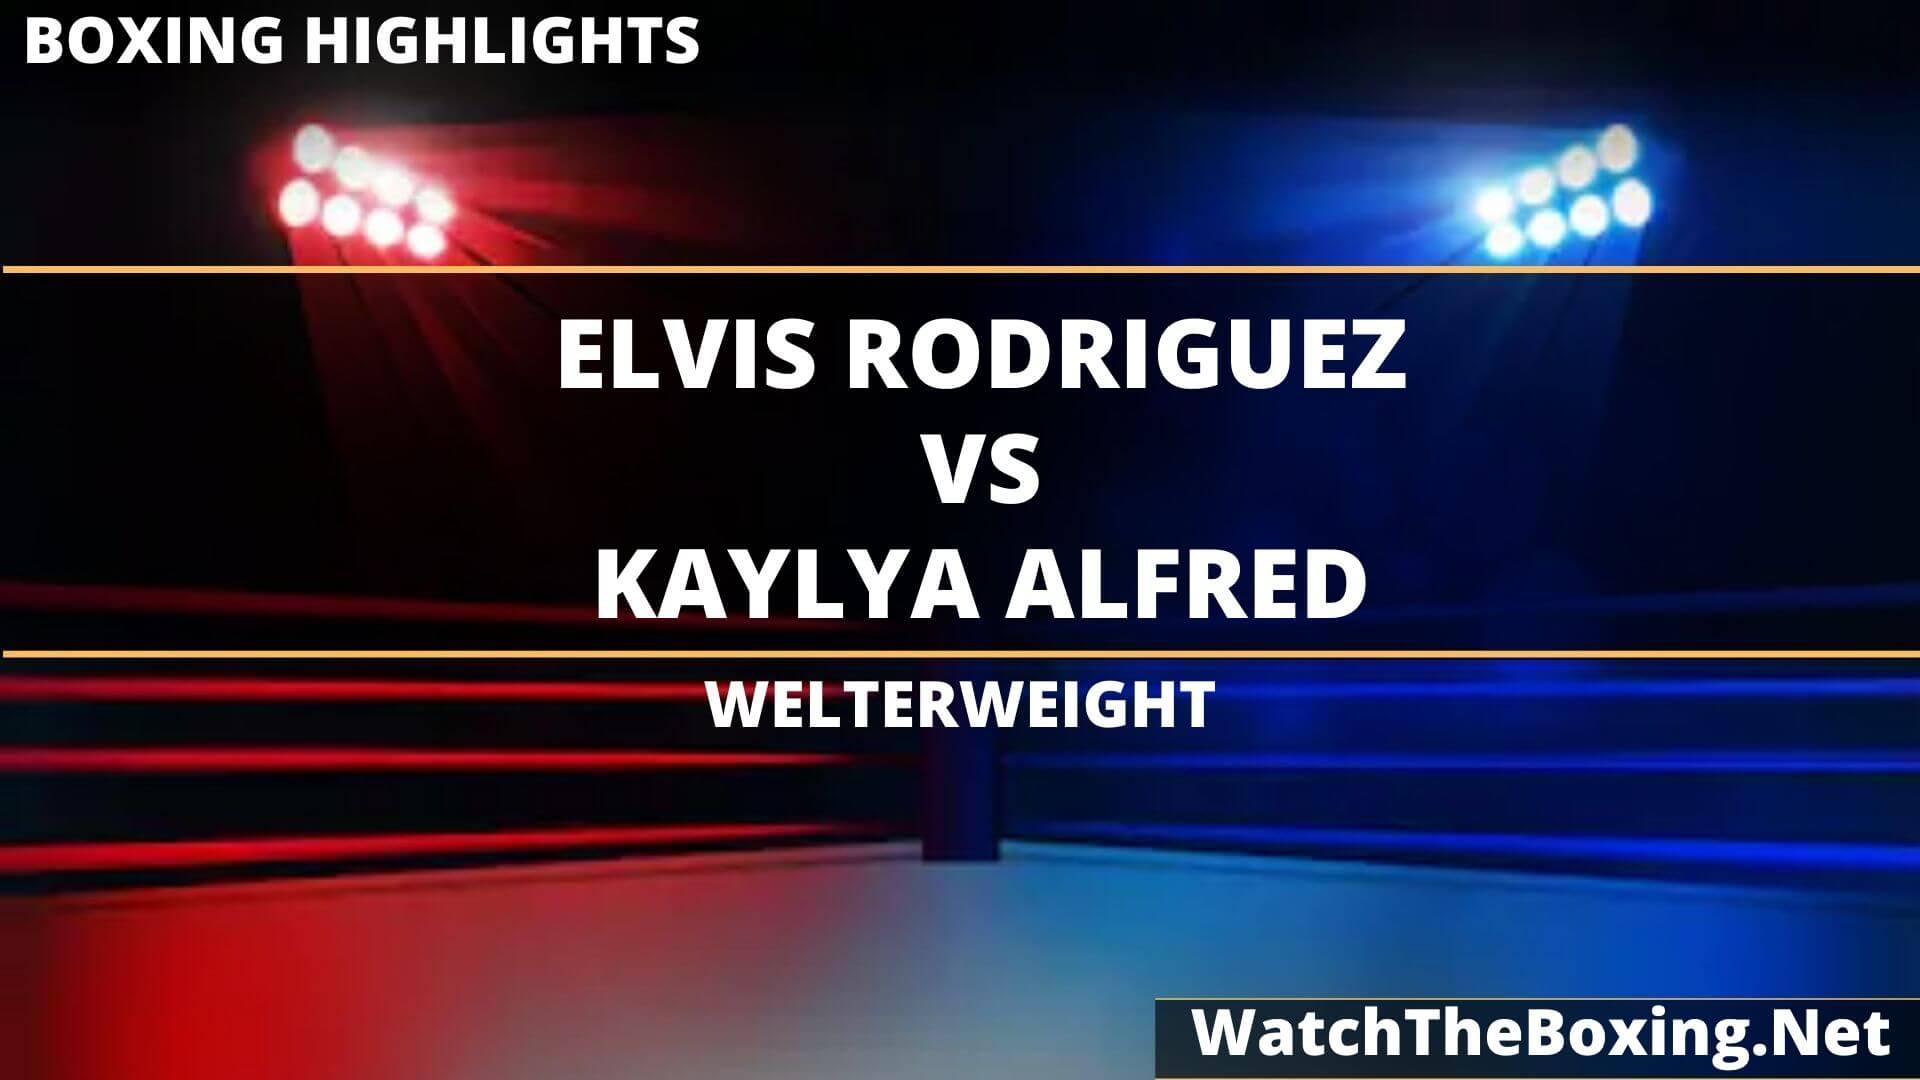 Elvis Rodriguez Vs Kaylyn Alfred Highlights 2020